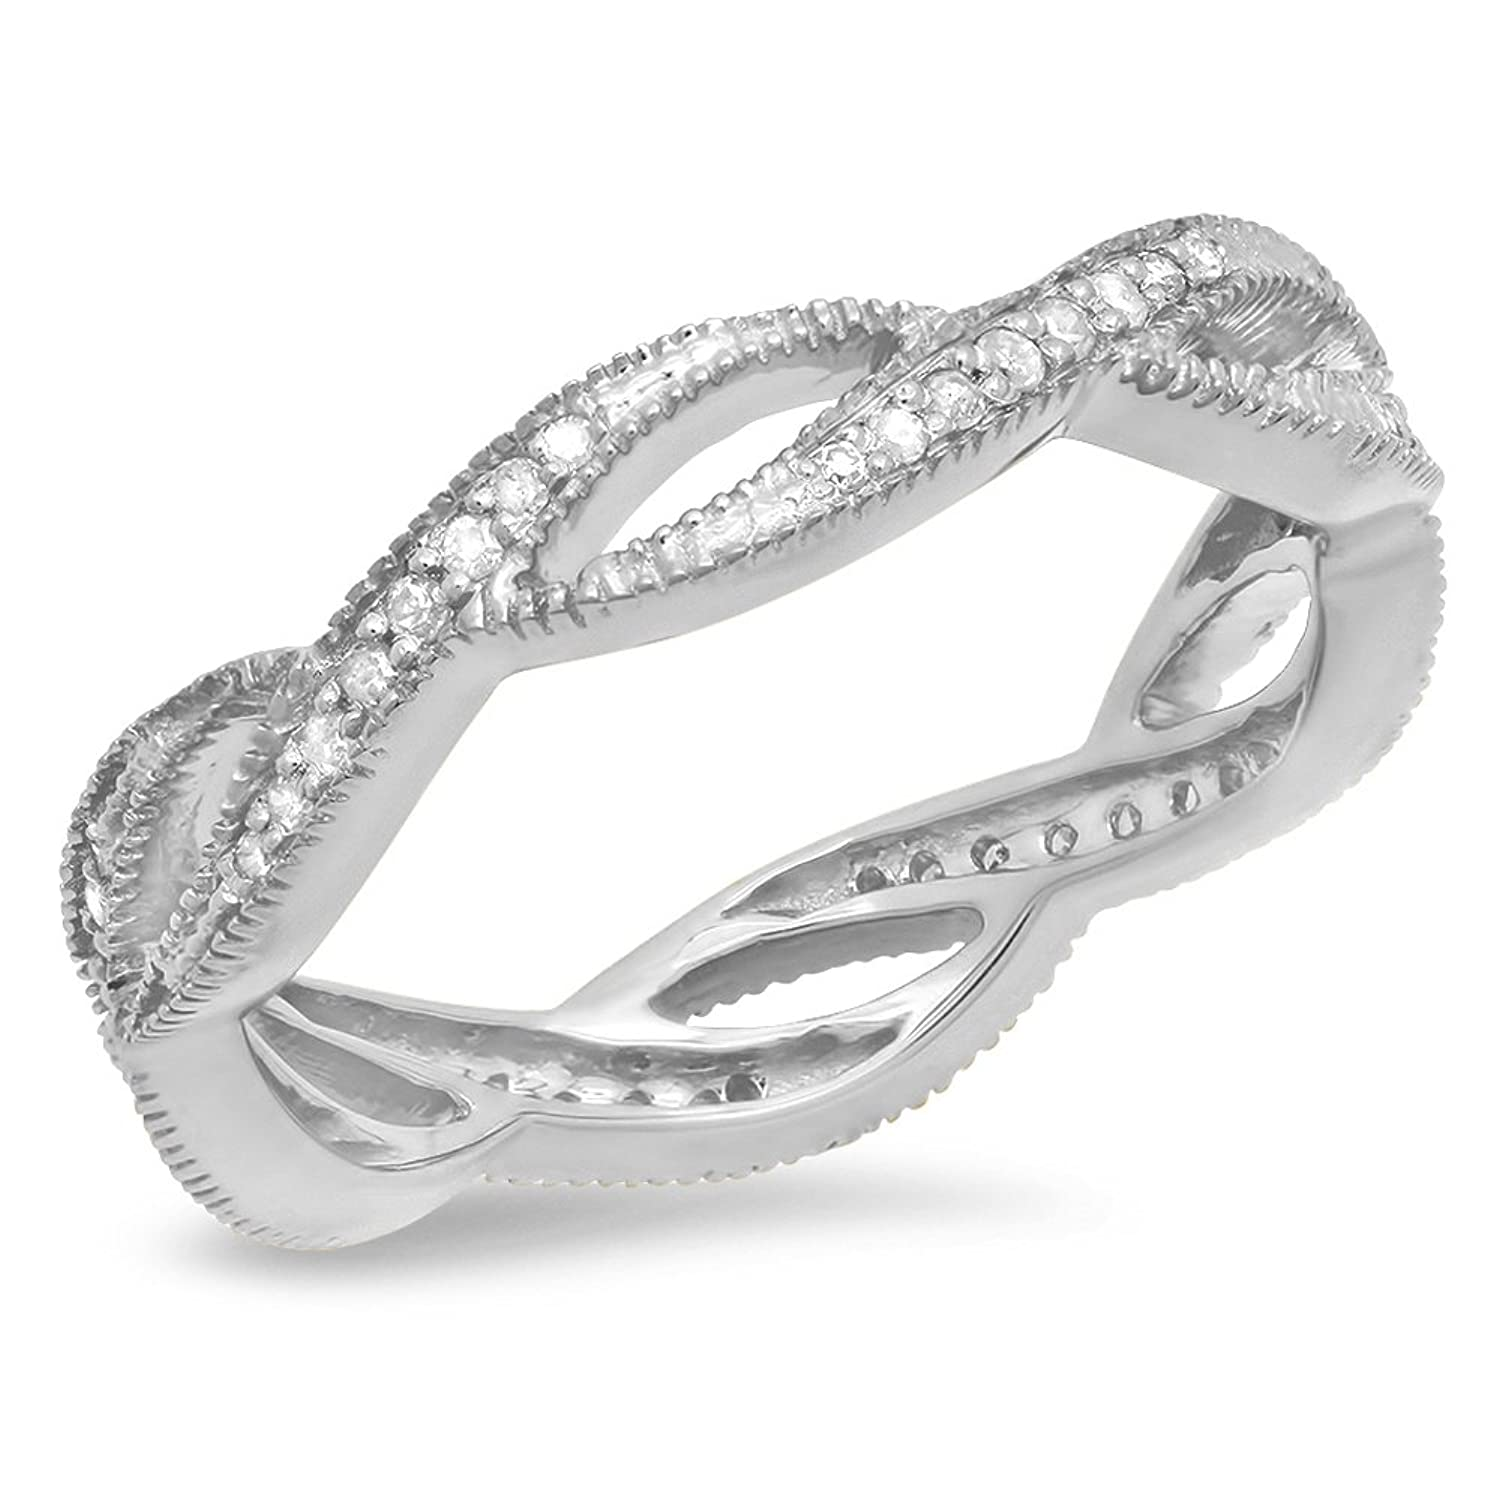 0.20 Carat (ctw) 14K Gold Round White Diamond Ladies Wedding Eternity Band Stackable Ring 1/4 CT